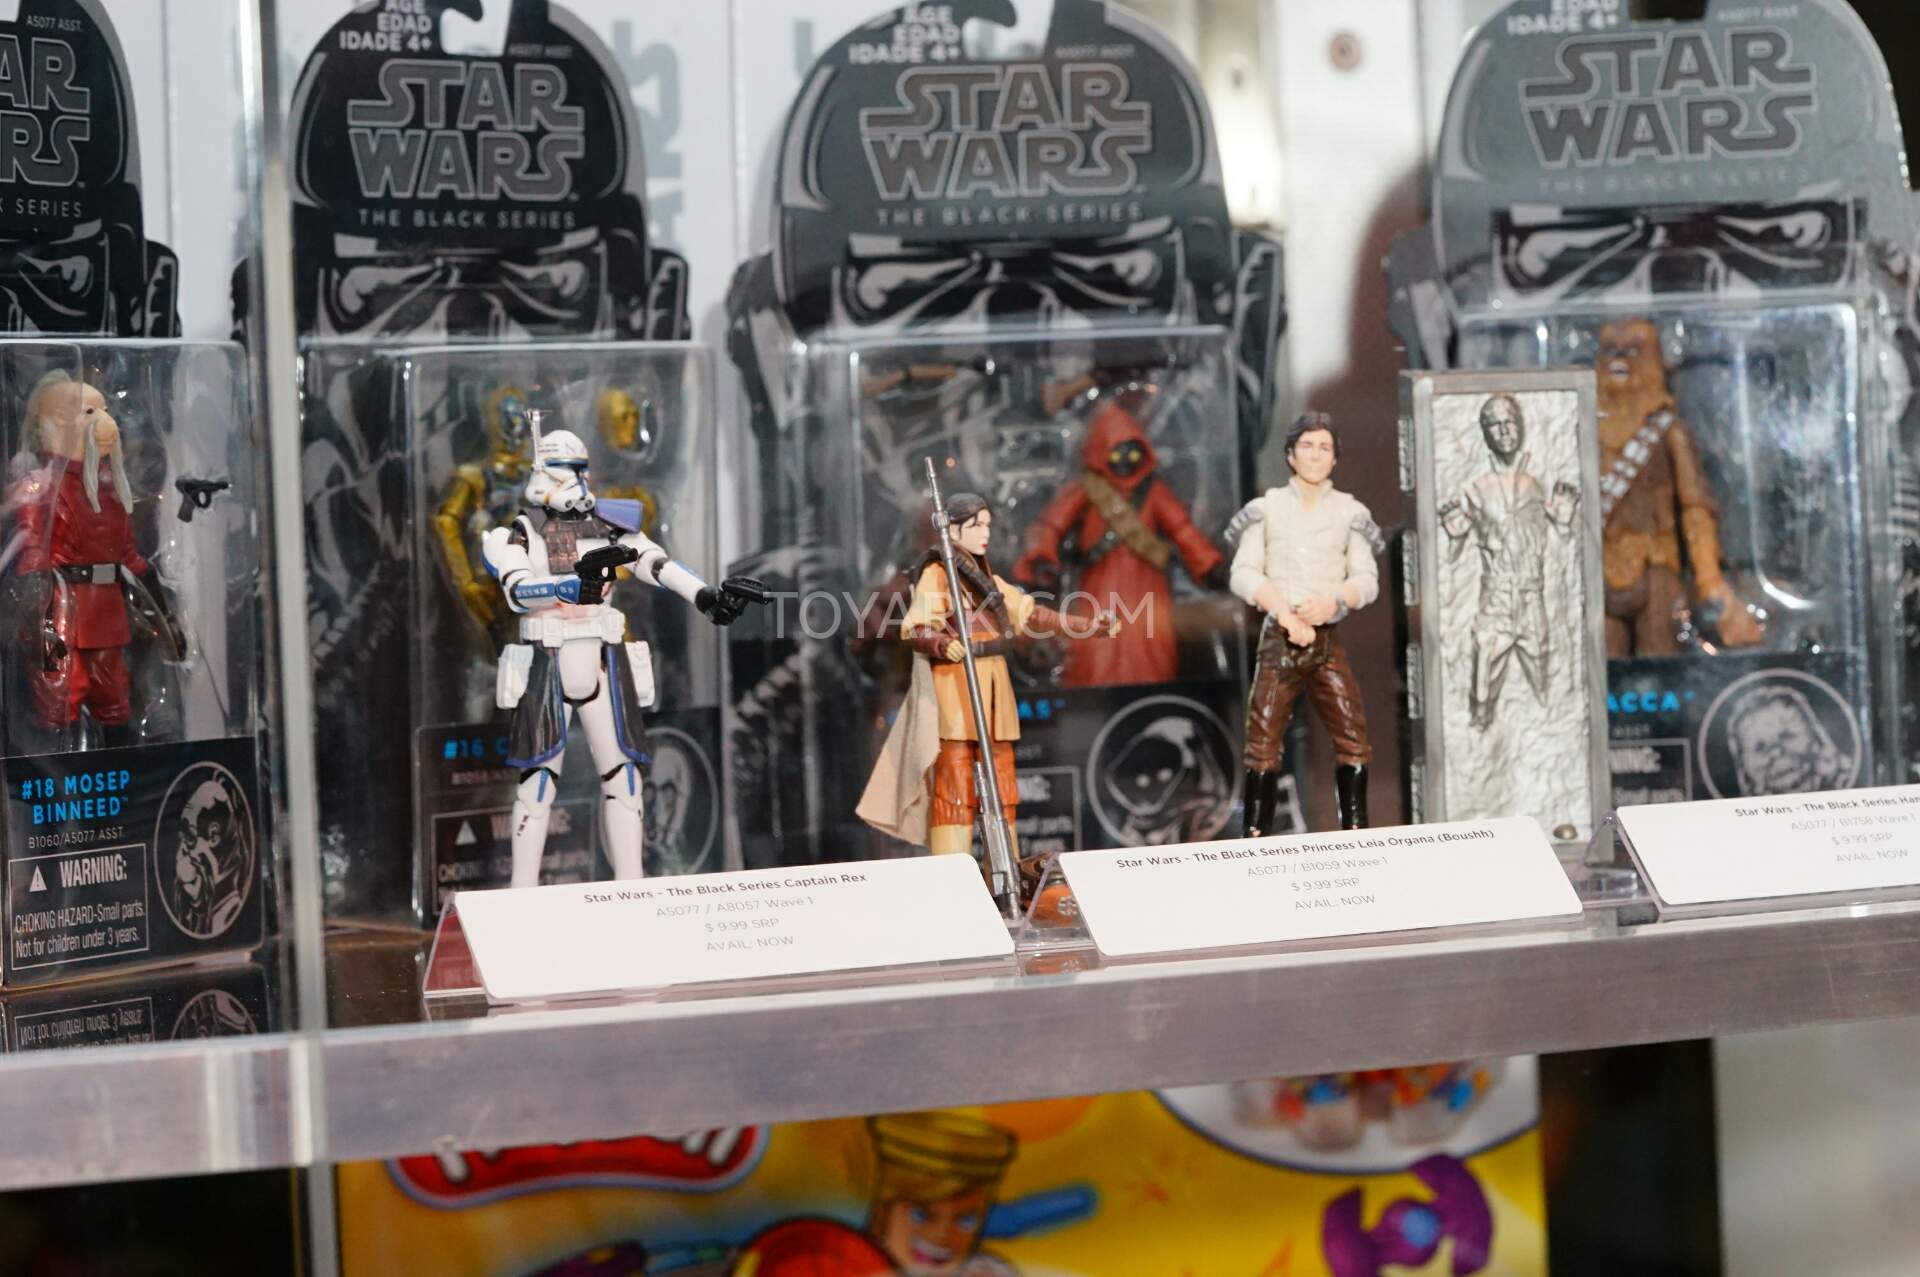 sdcc 2015 hasbro star wars preview night booth display. Black Bedroom Furniture Sets. Home Design Ideas